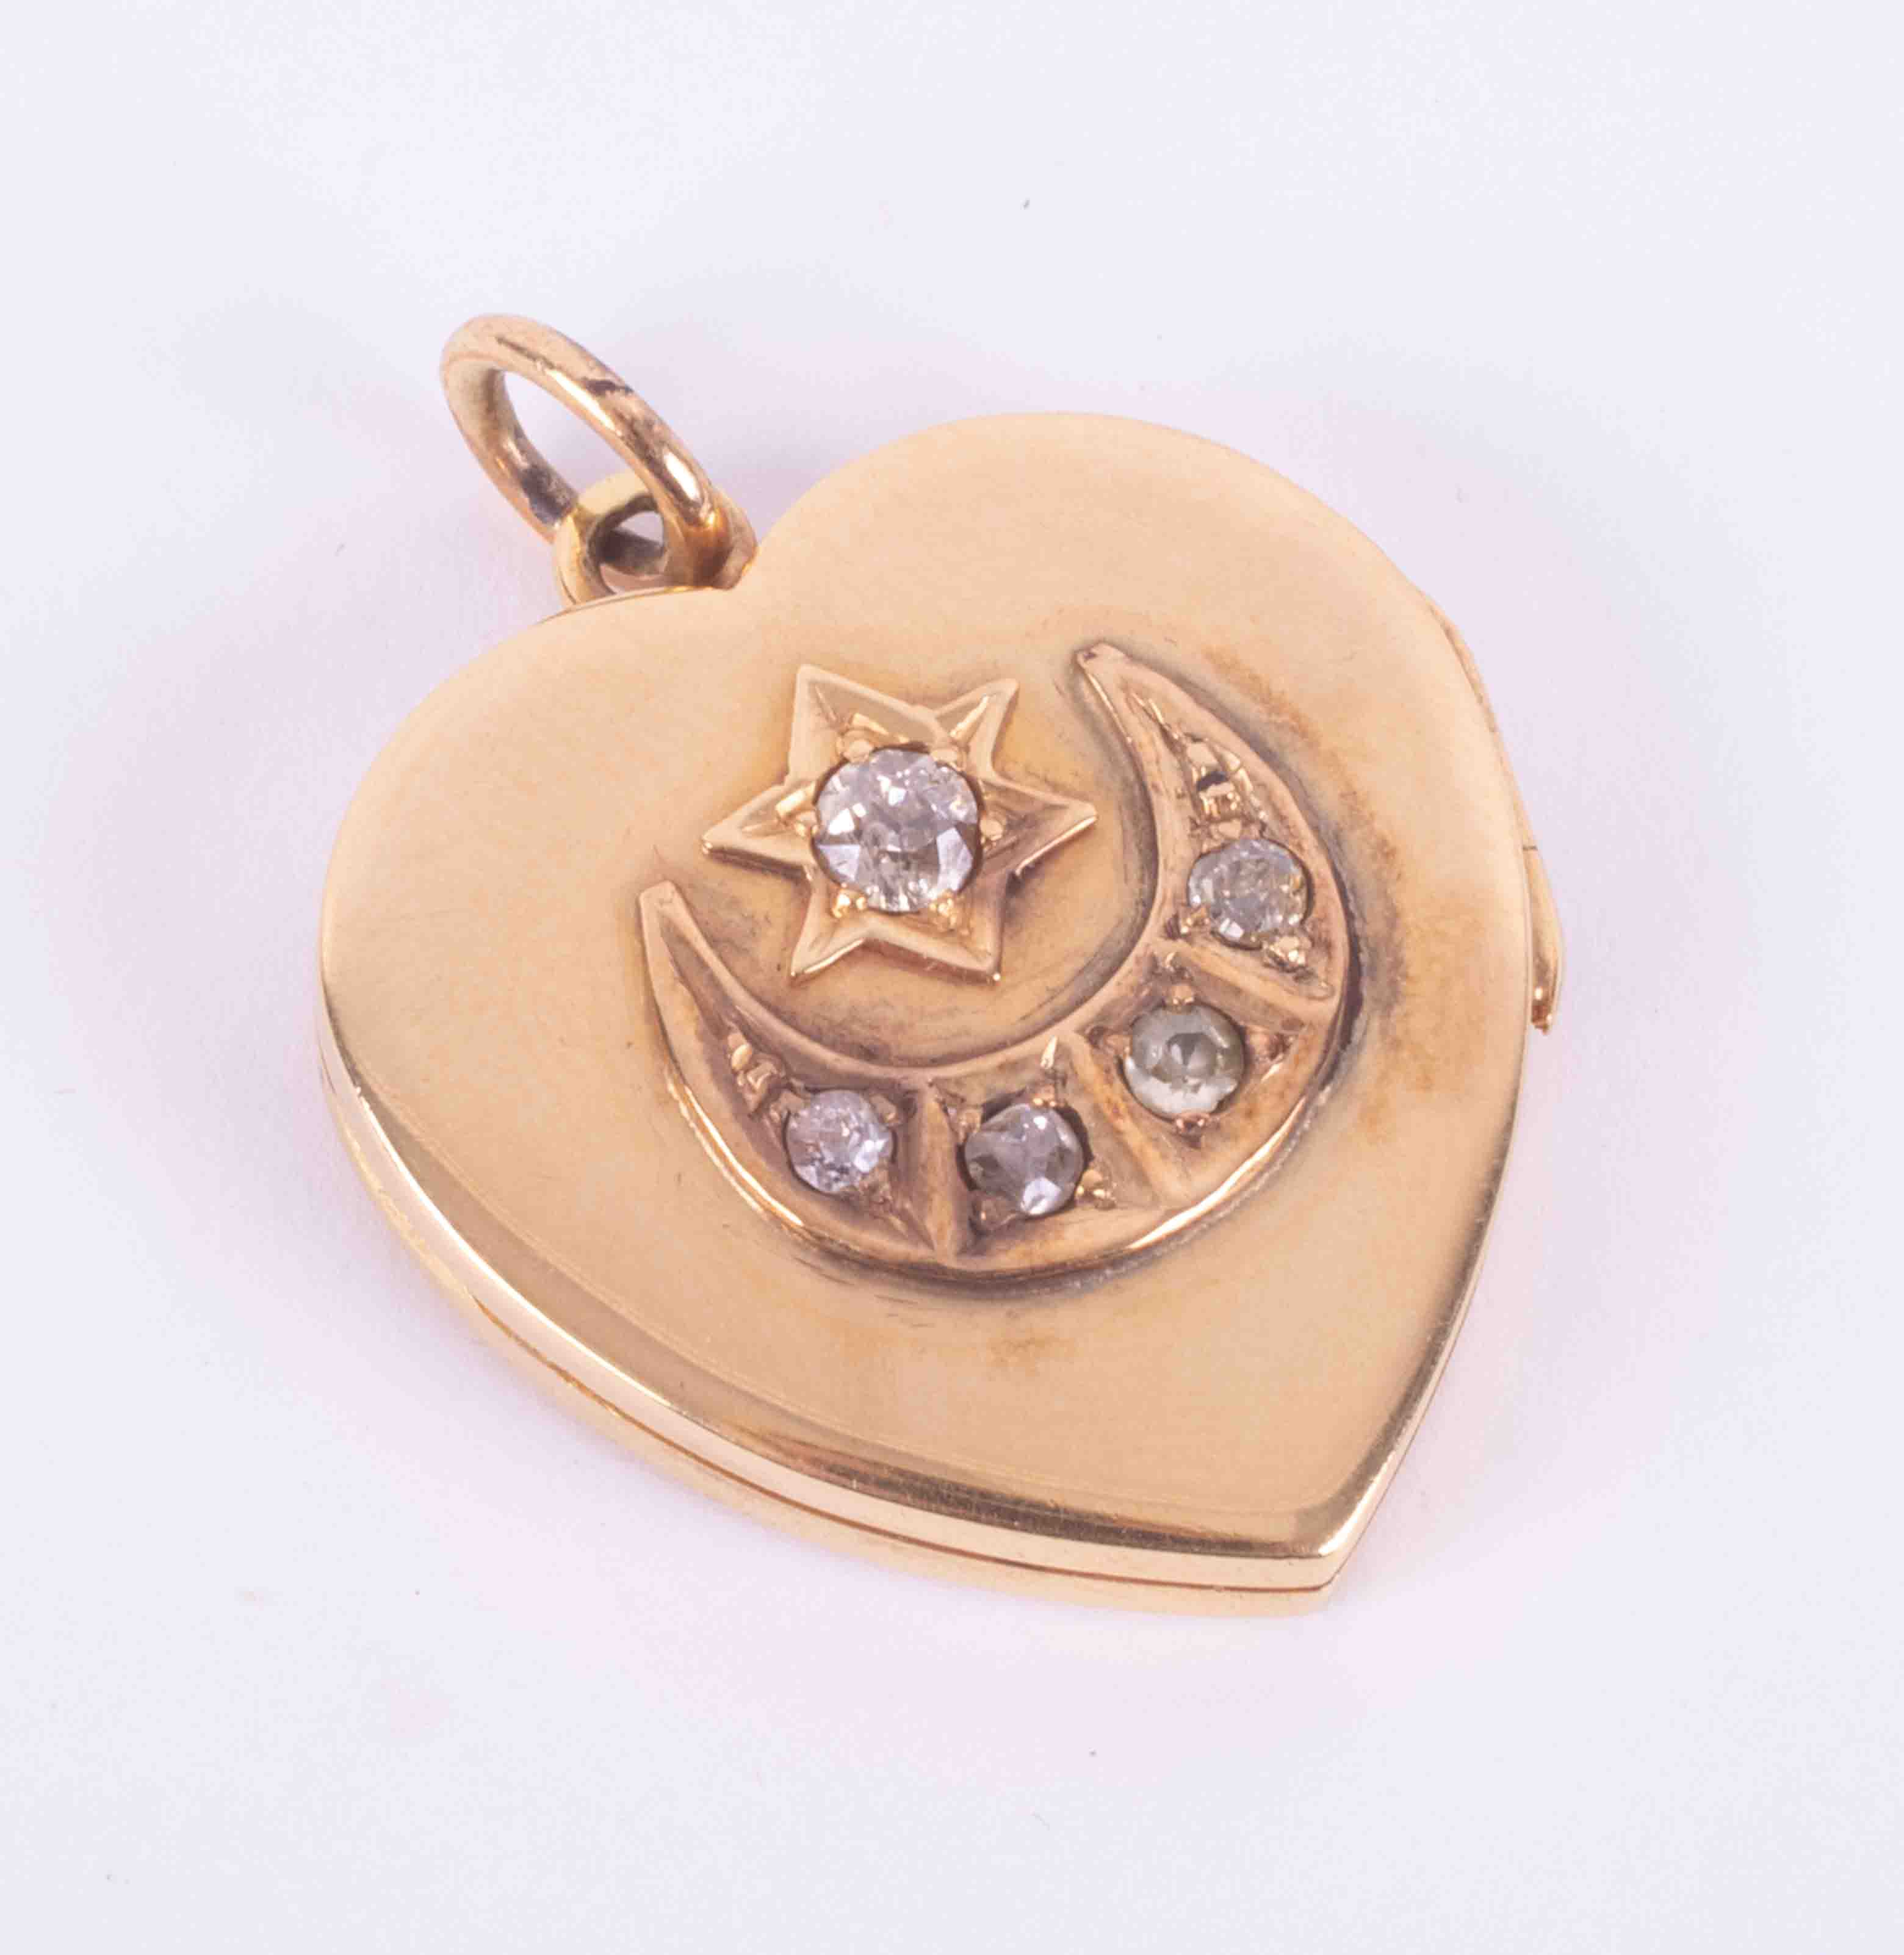 An antique 18ct yellow gold heart locket with a star and moon design set with five old round cut